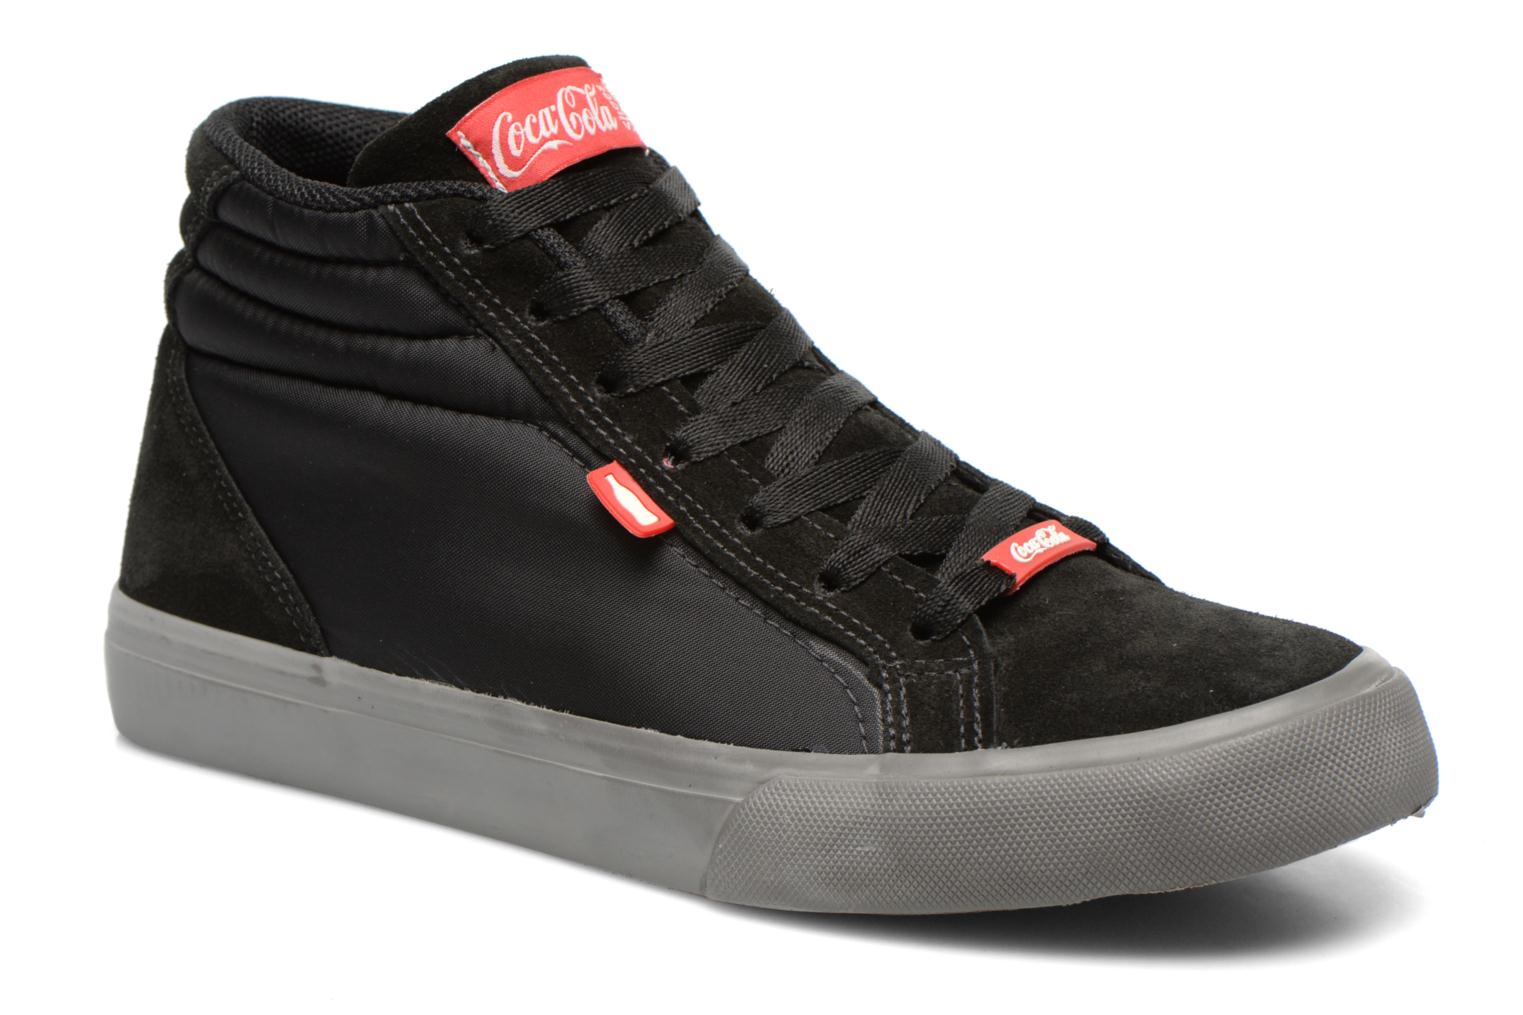 Sneakers Darma Nylon by Coca-cola shoes